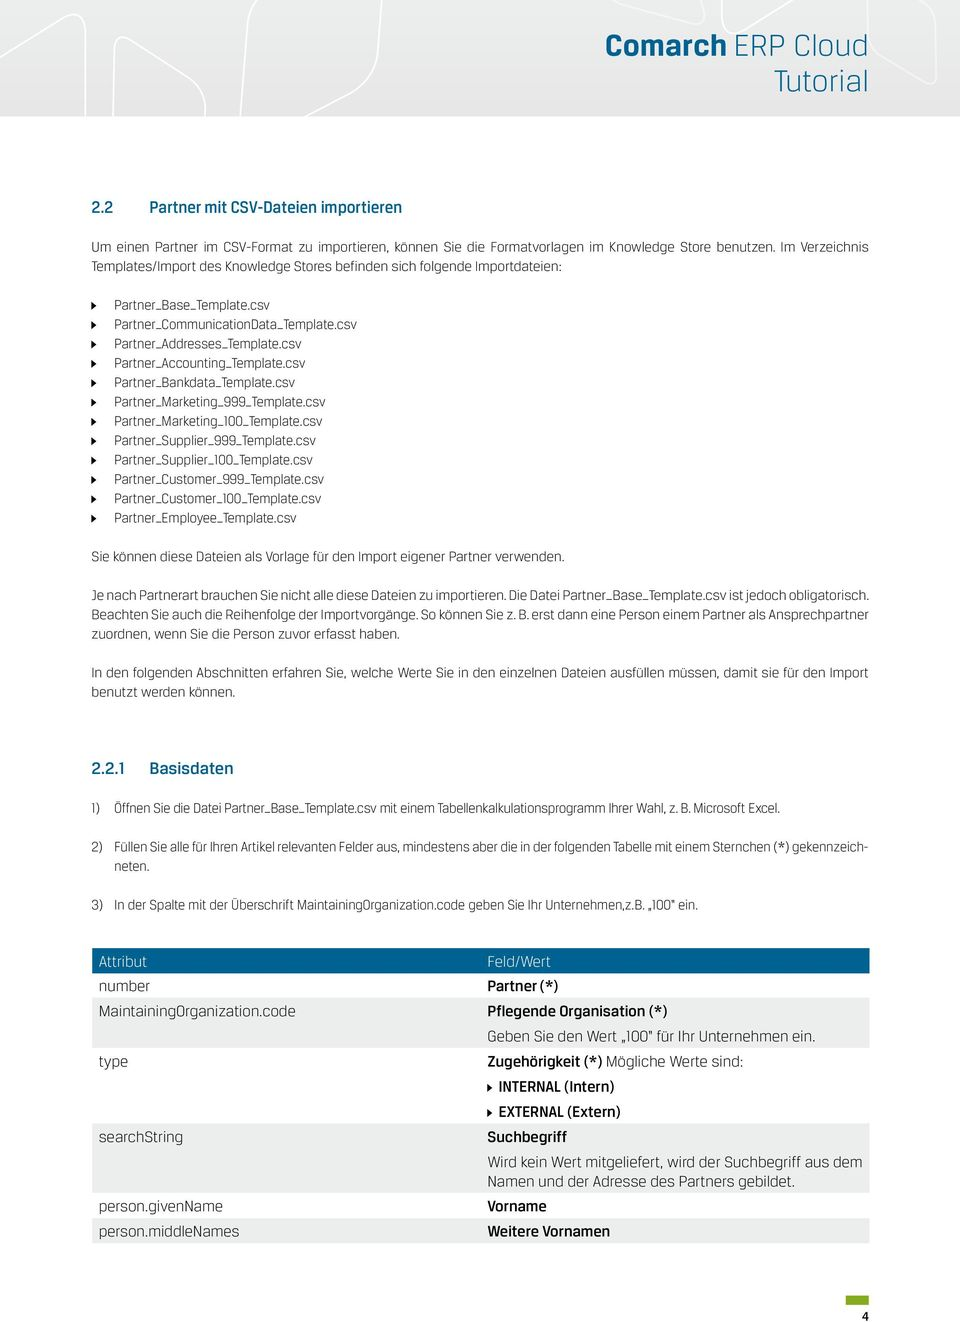 csv Partner_Accounting_Template.csv Partner_Bankdata_Template.csv Partner_Marketing_999_Template.csv Partner_Marketing_100_Template.csv Partner_Supplier_999_Template.csv Partner_Supplier_100_Template.